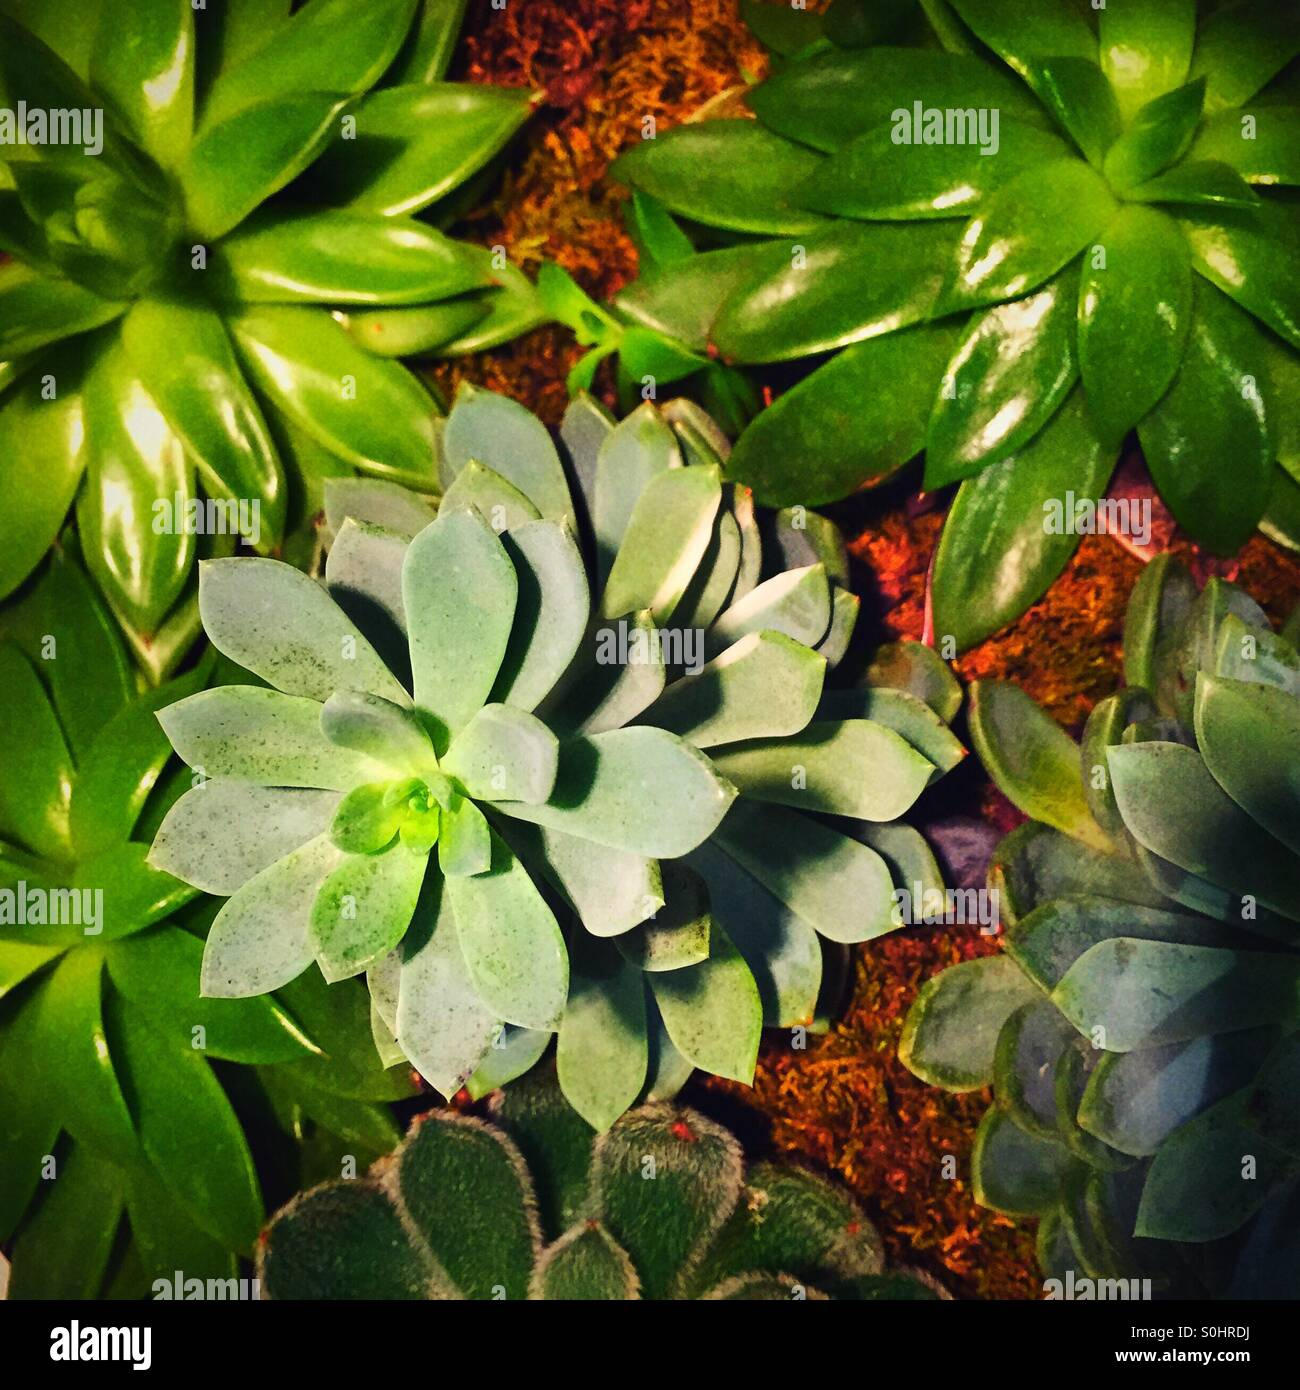 Succulent plants are green and shiny. Stock Photo